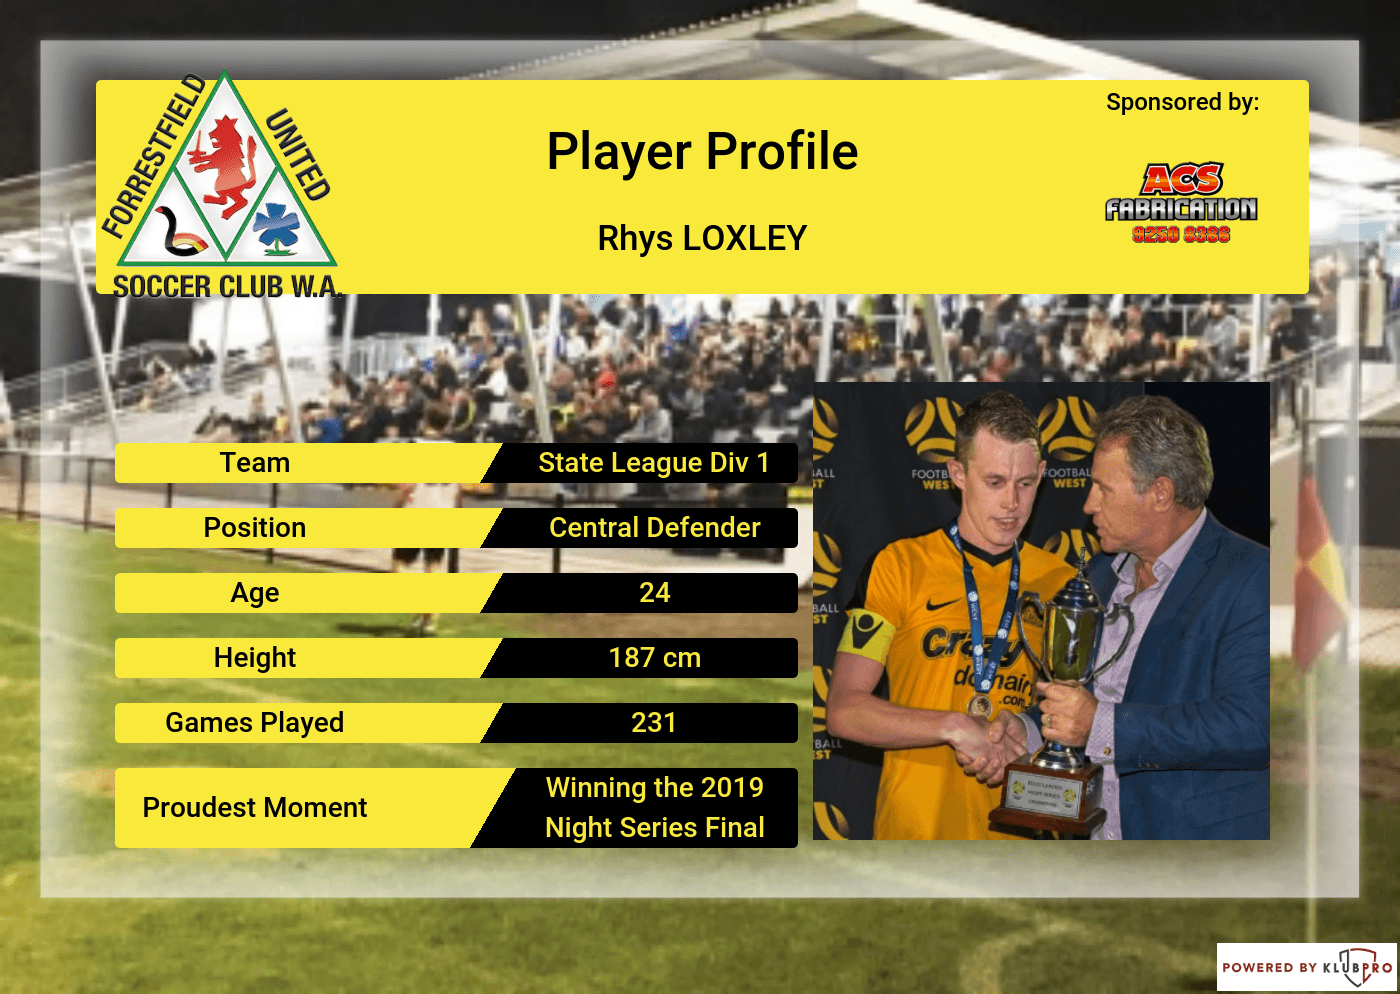 Forrestfield United Soccer Club-player-achievement-R LOXLEY-1552364646590 (1).png